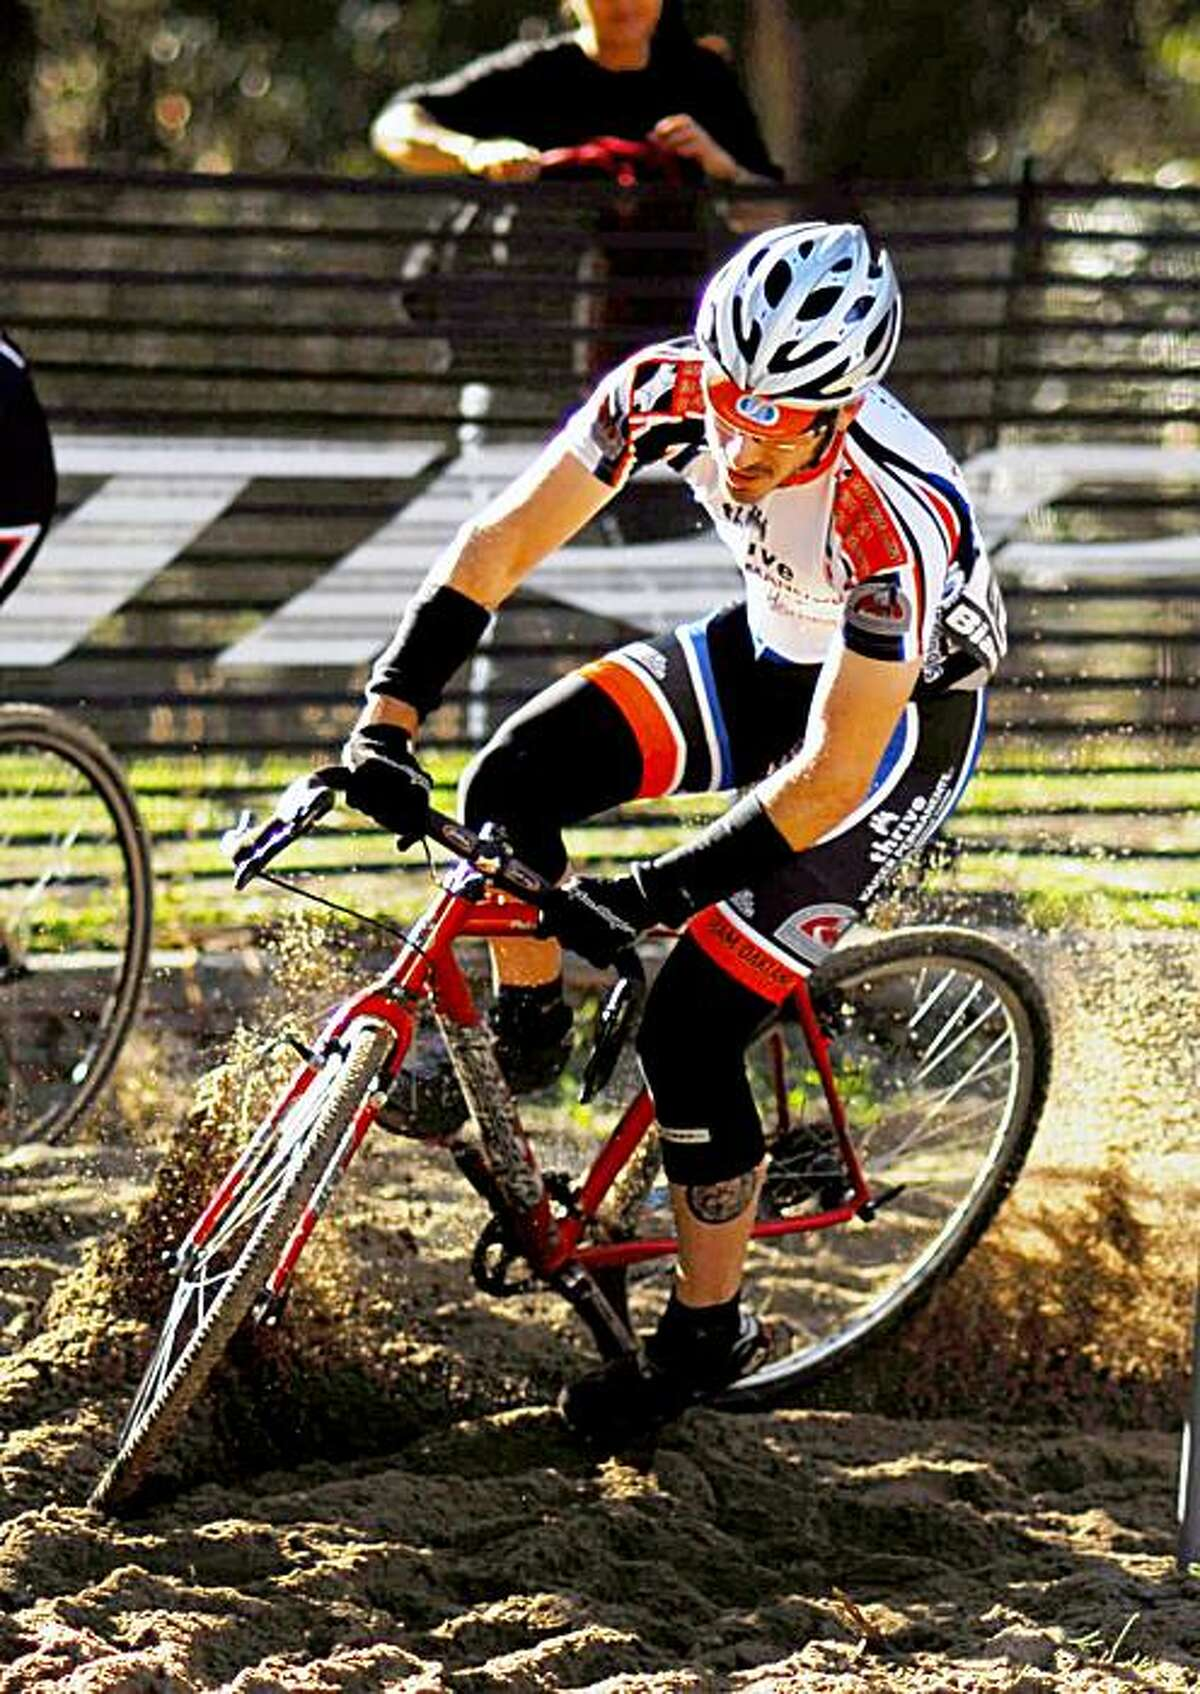 Cyclocross racers scramble up hills, racing through mud and rock in this sport popular in the Bay Area.